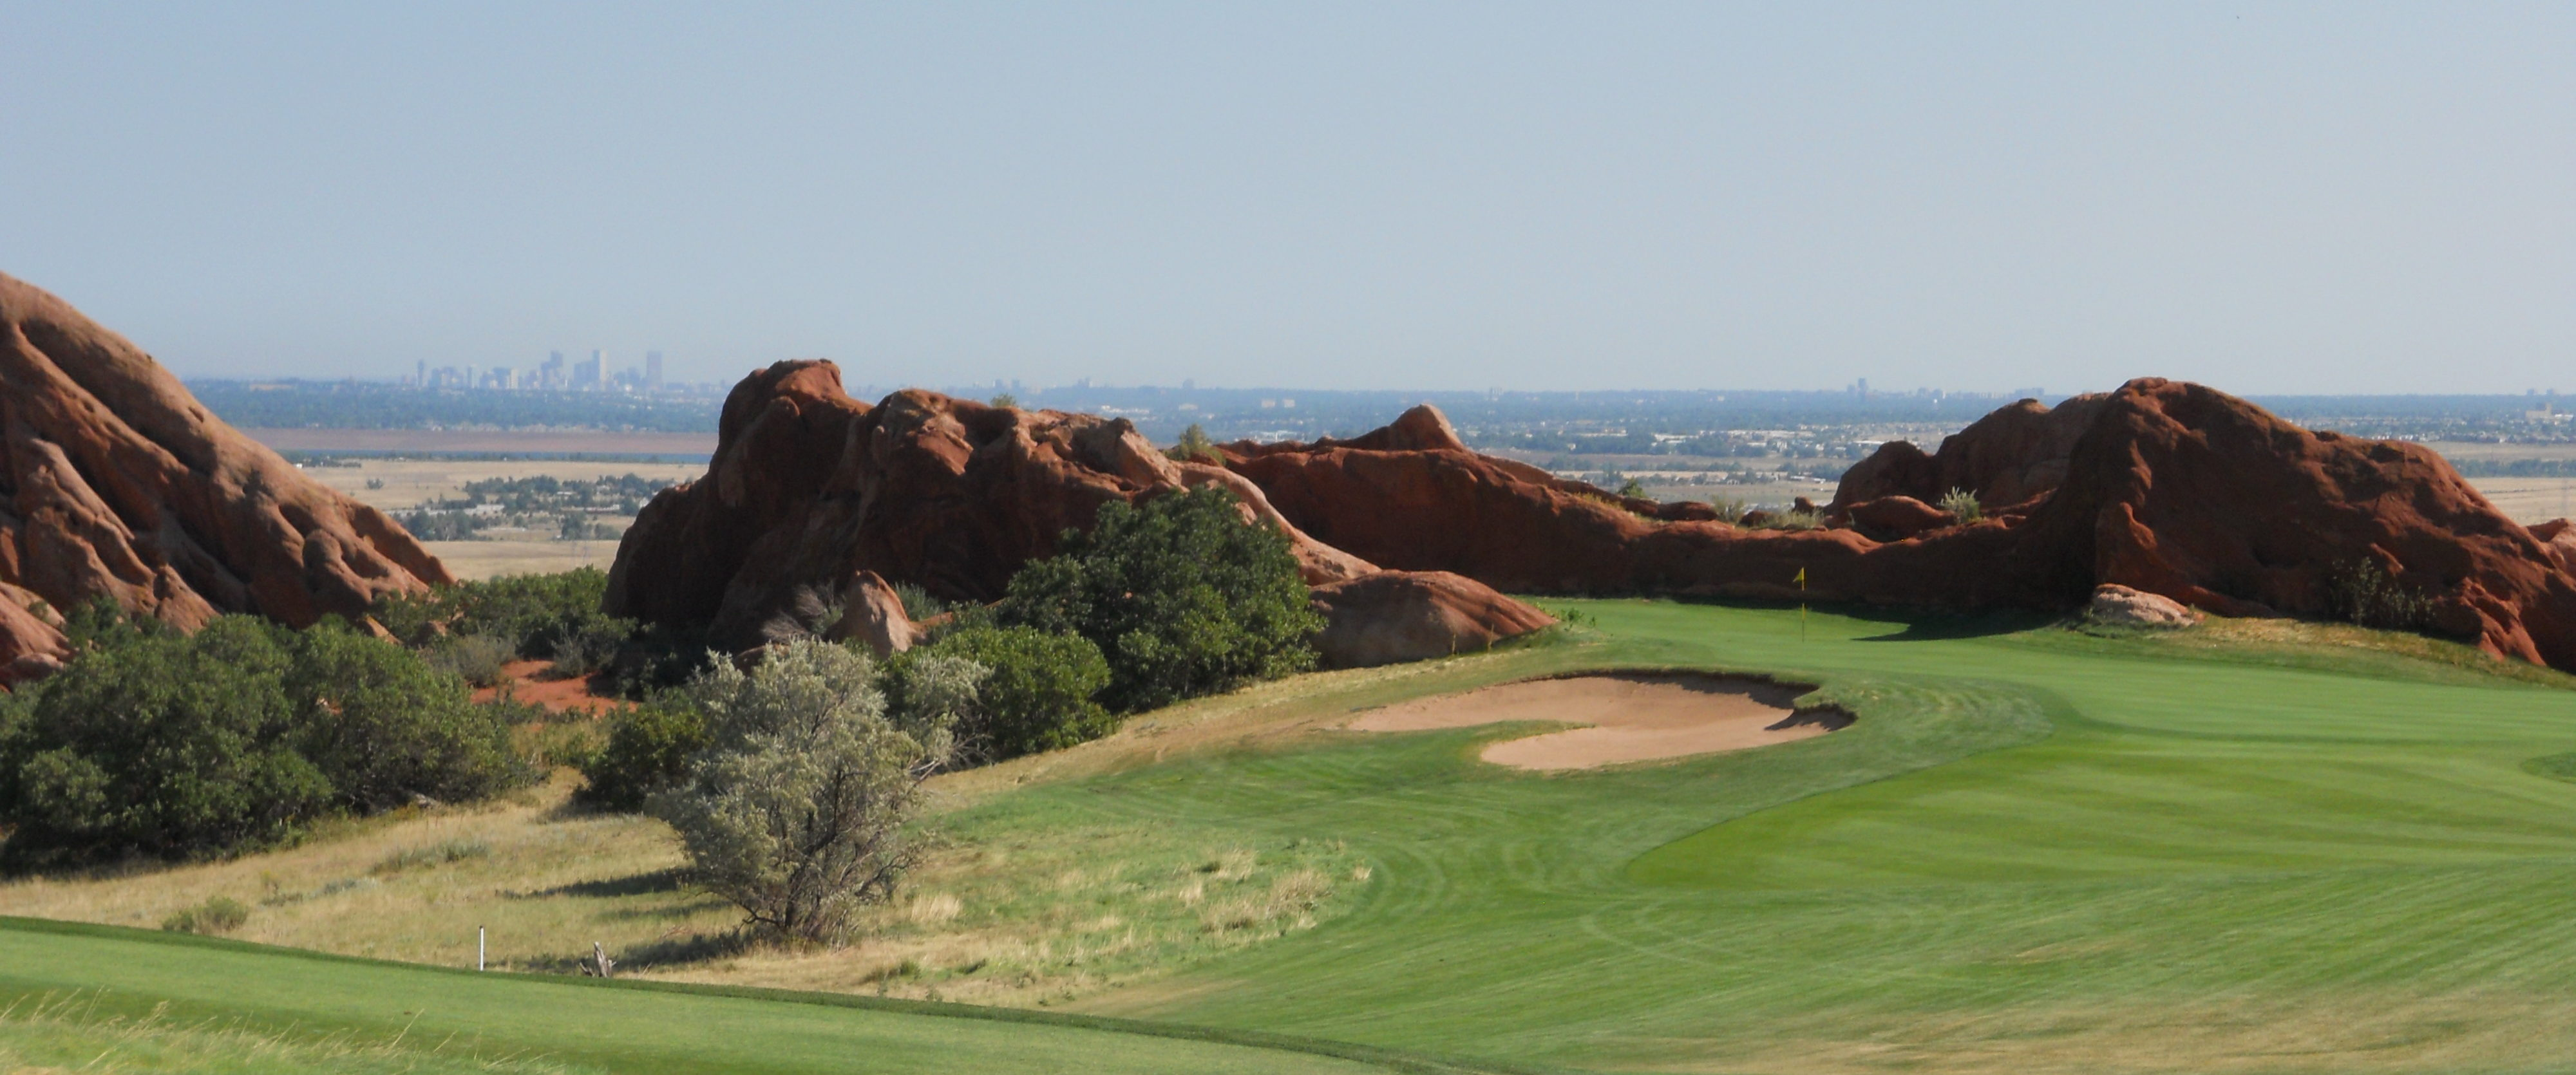 Arrowhead Golf Course, Littleton, Colorado. Golf course framed by red rocks with Denver sky line in distance.